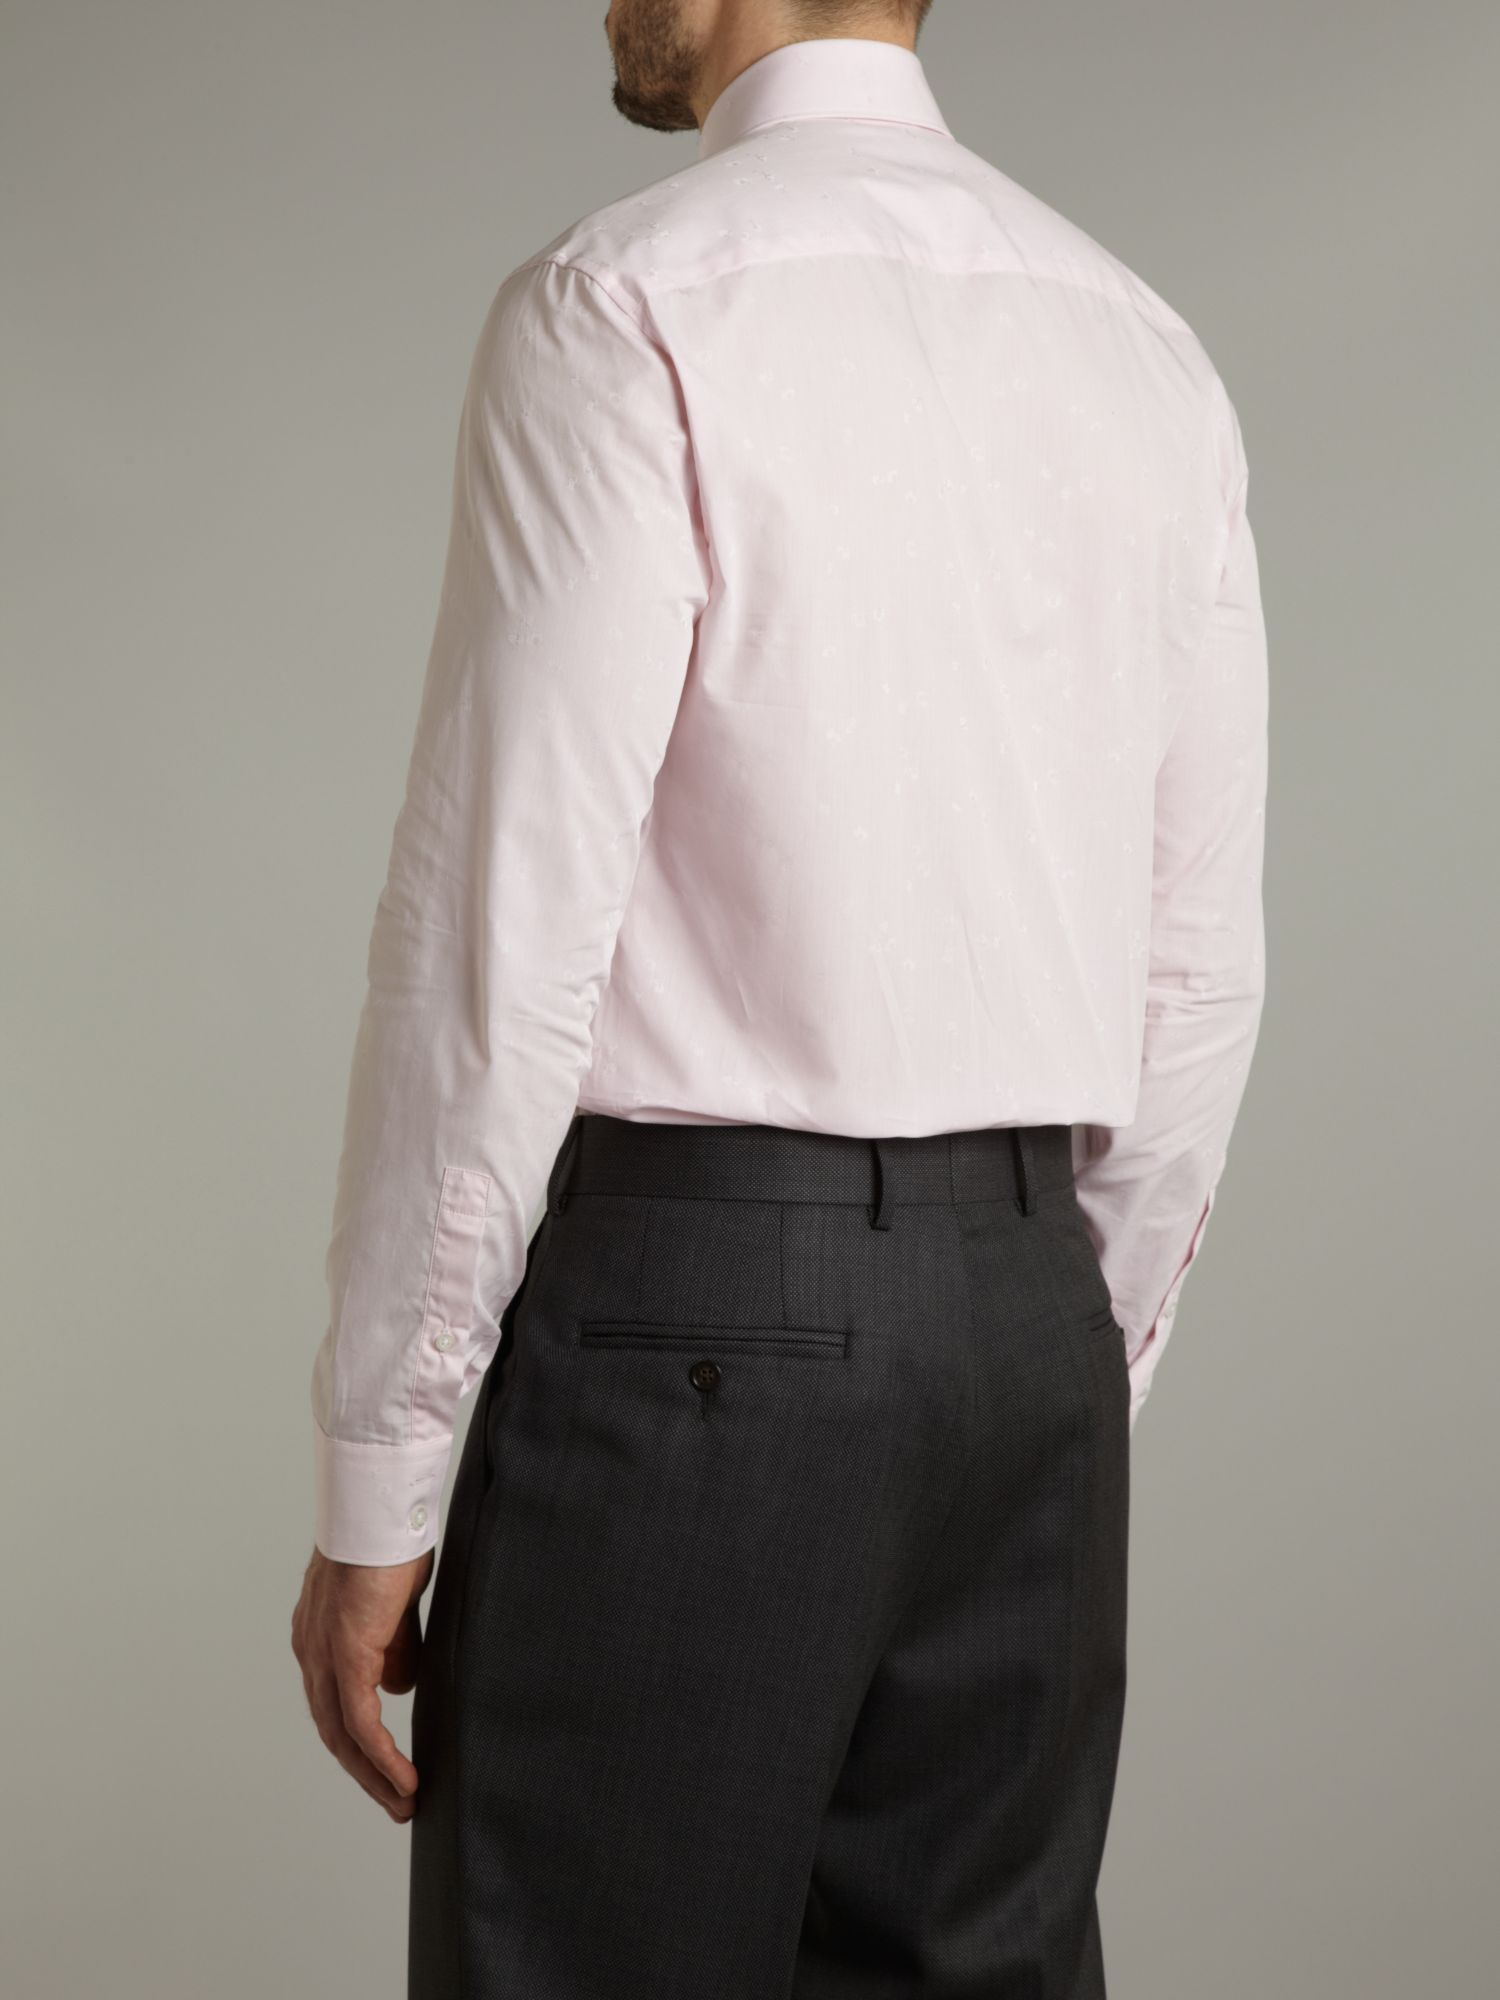 KENZO Long Sleeve Tonal Floral Shirt in Light Pink (Pink) for Men